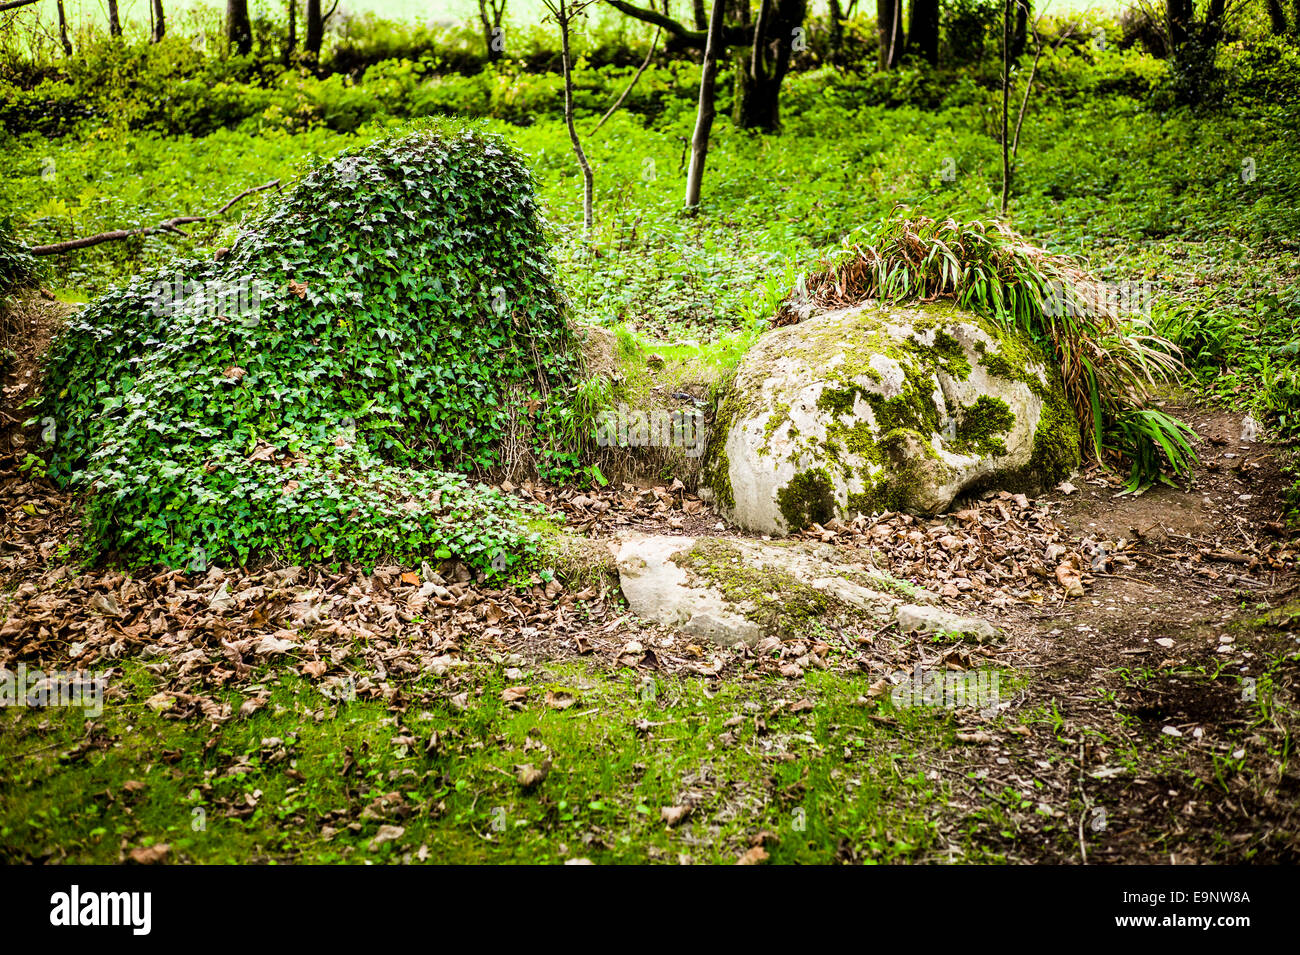 The ivy-clad and moss-covered  'Mud Maid' or Garden Goddess in a woodland setting in Heligan Gardens Cornwall - Stock Image